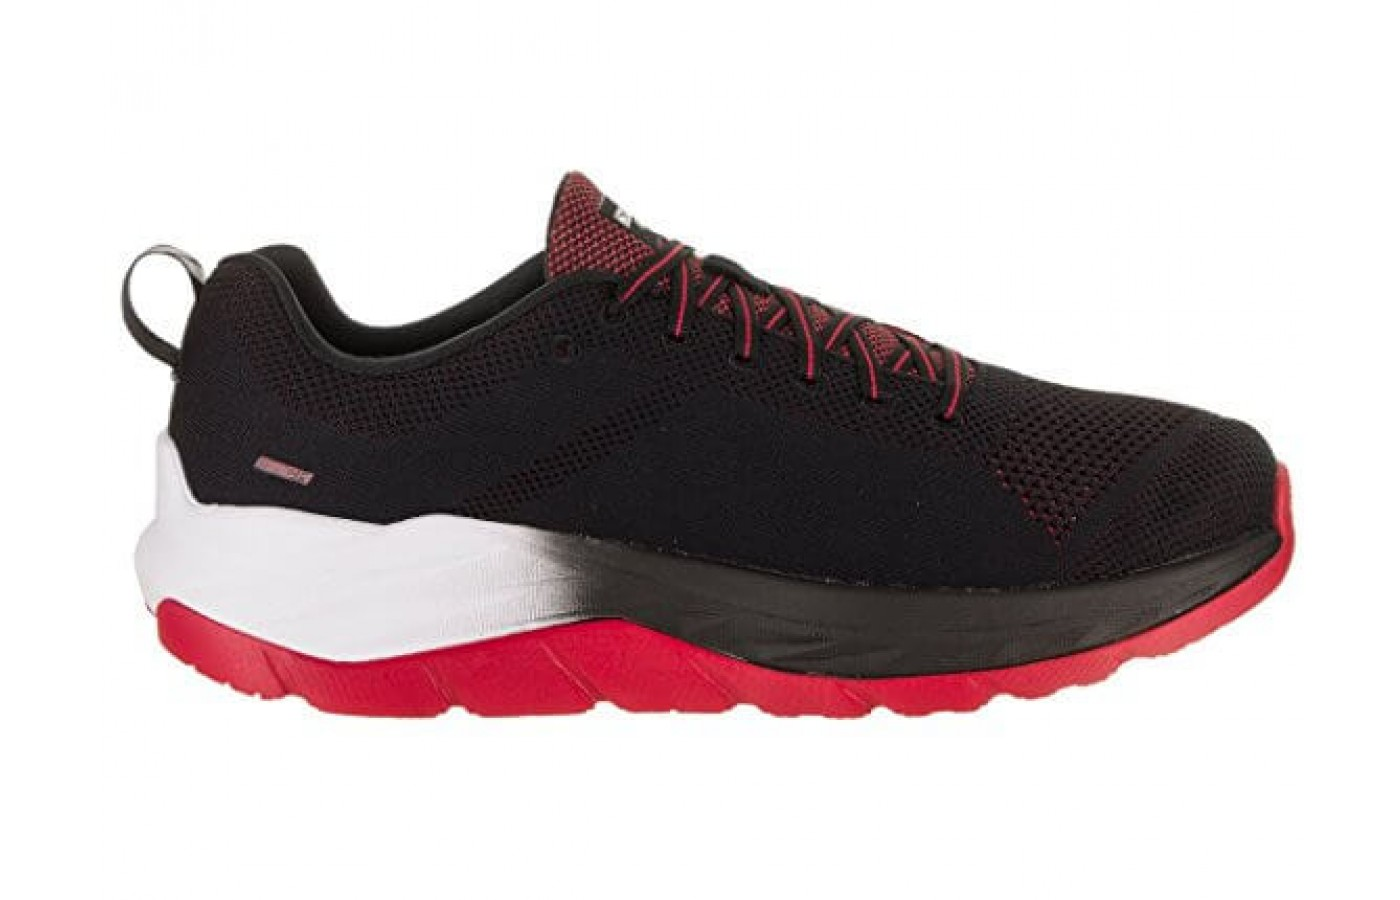 The Hoka One One Mach is made with PROFLY midsole cushioning